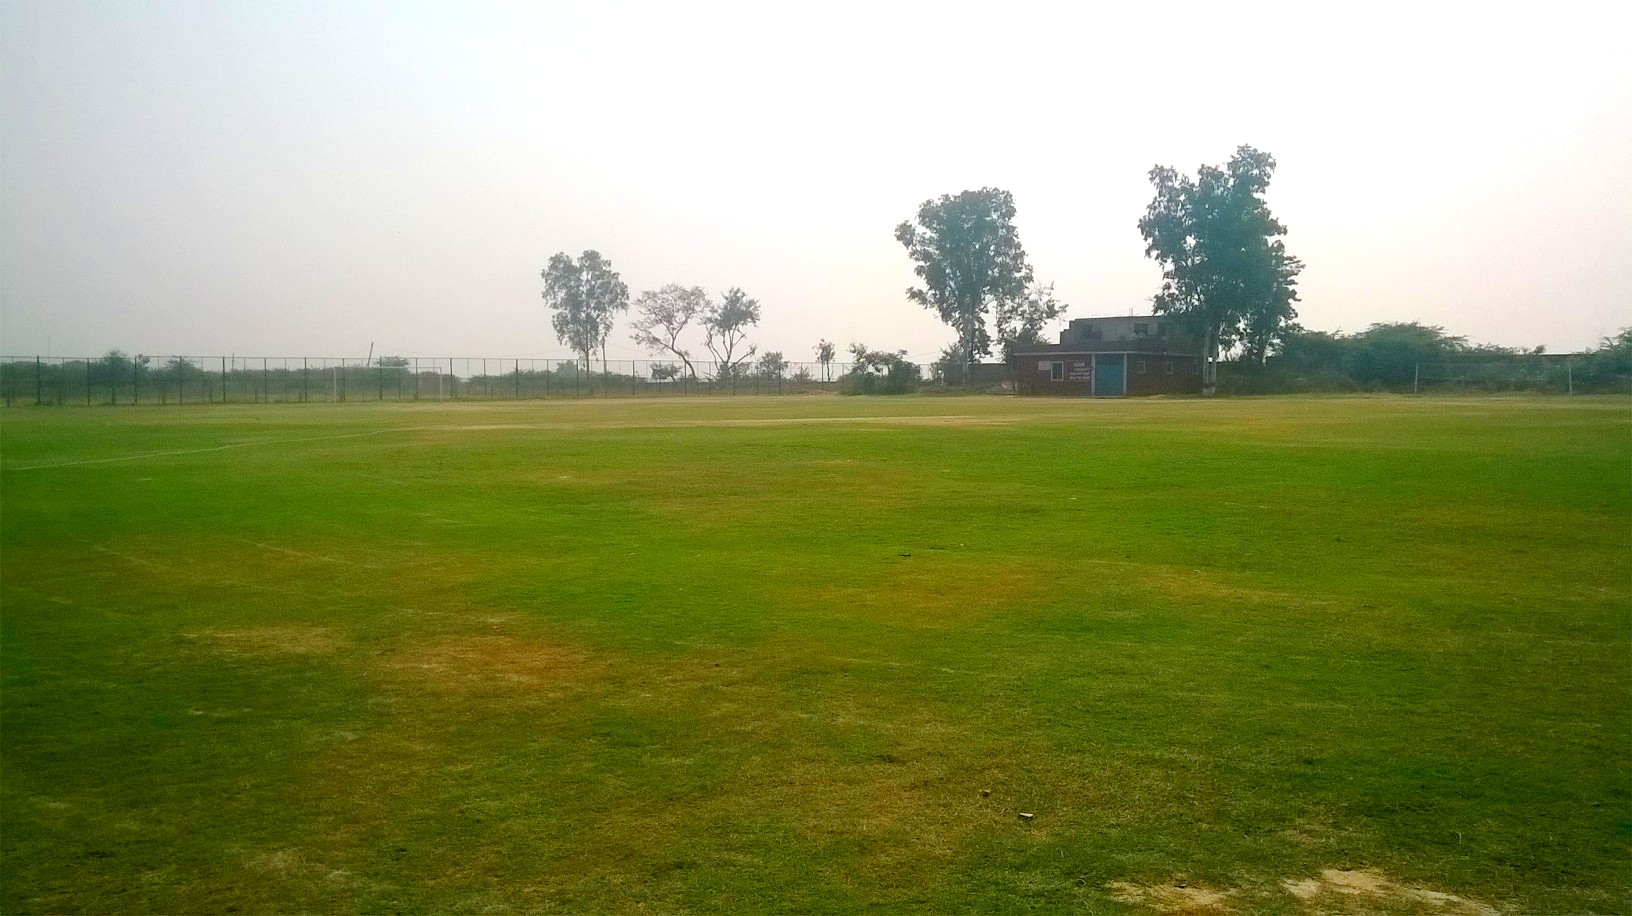 Sports Fiesta Ground – Cricket and Soccer Ground